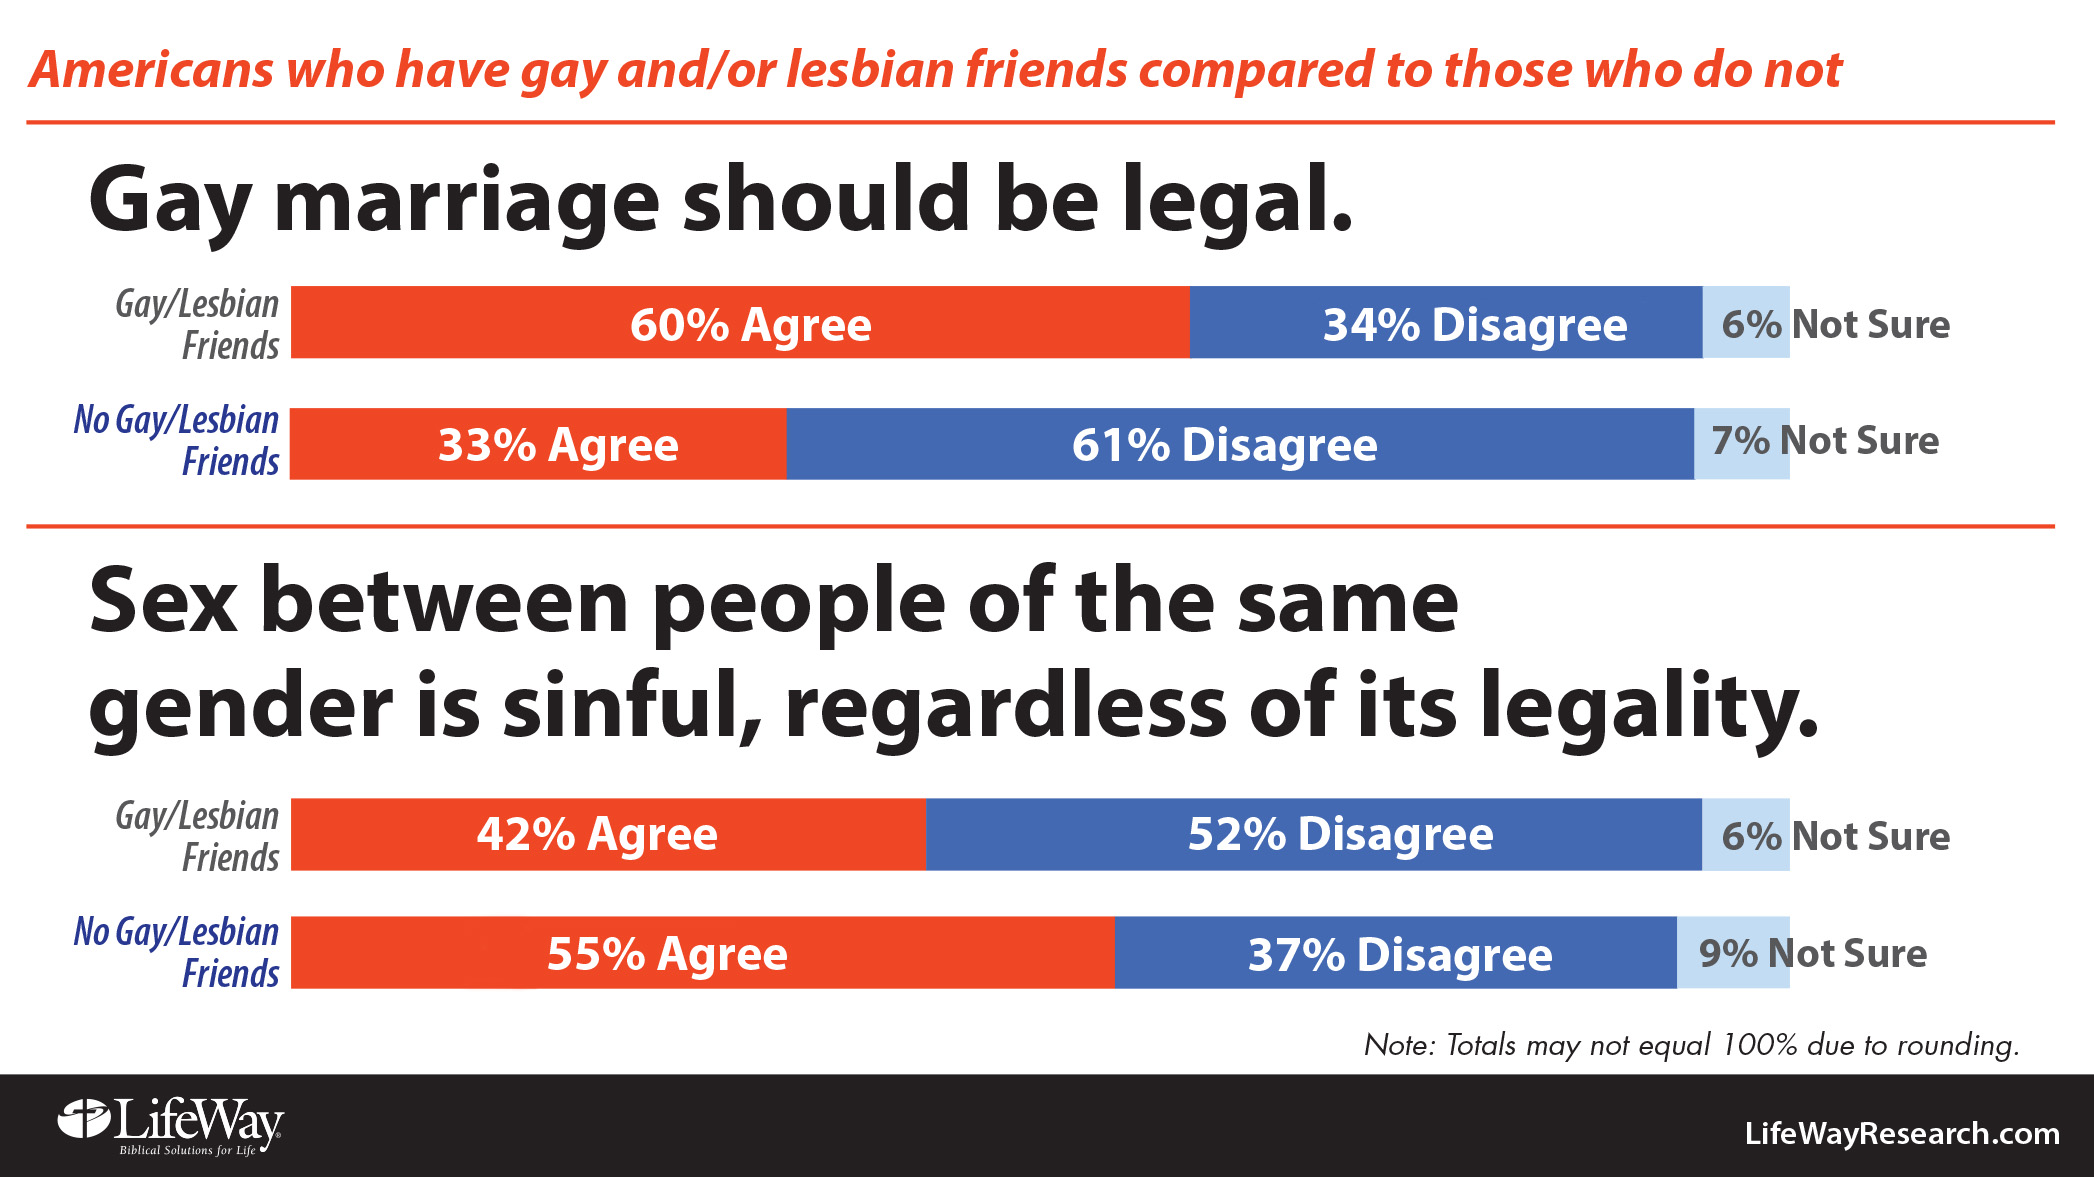 same sex marriage should be legal essay amy rowland dissertation technical writing essays